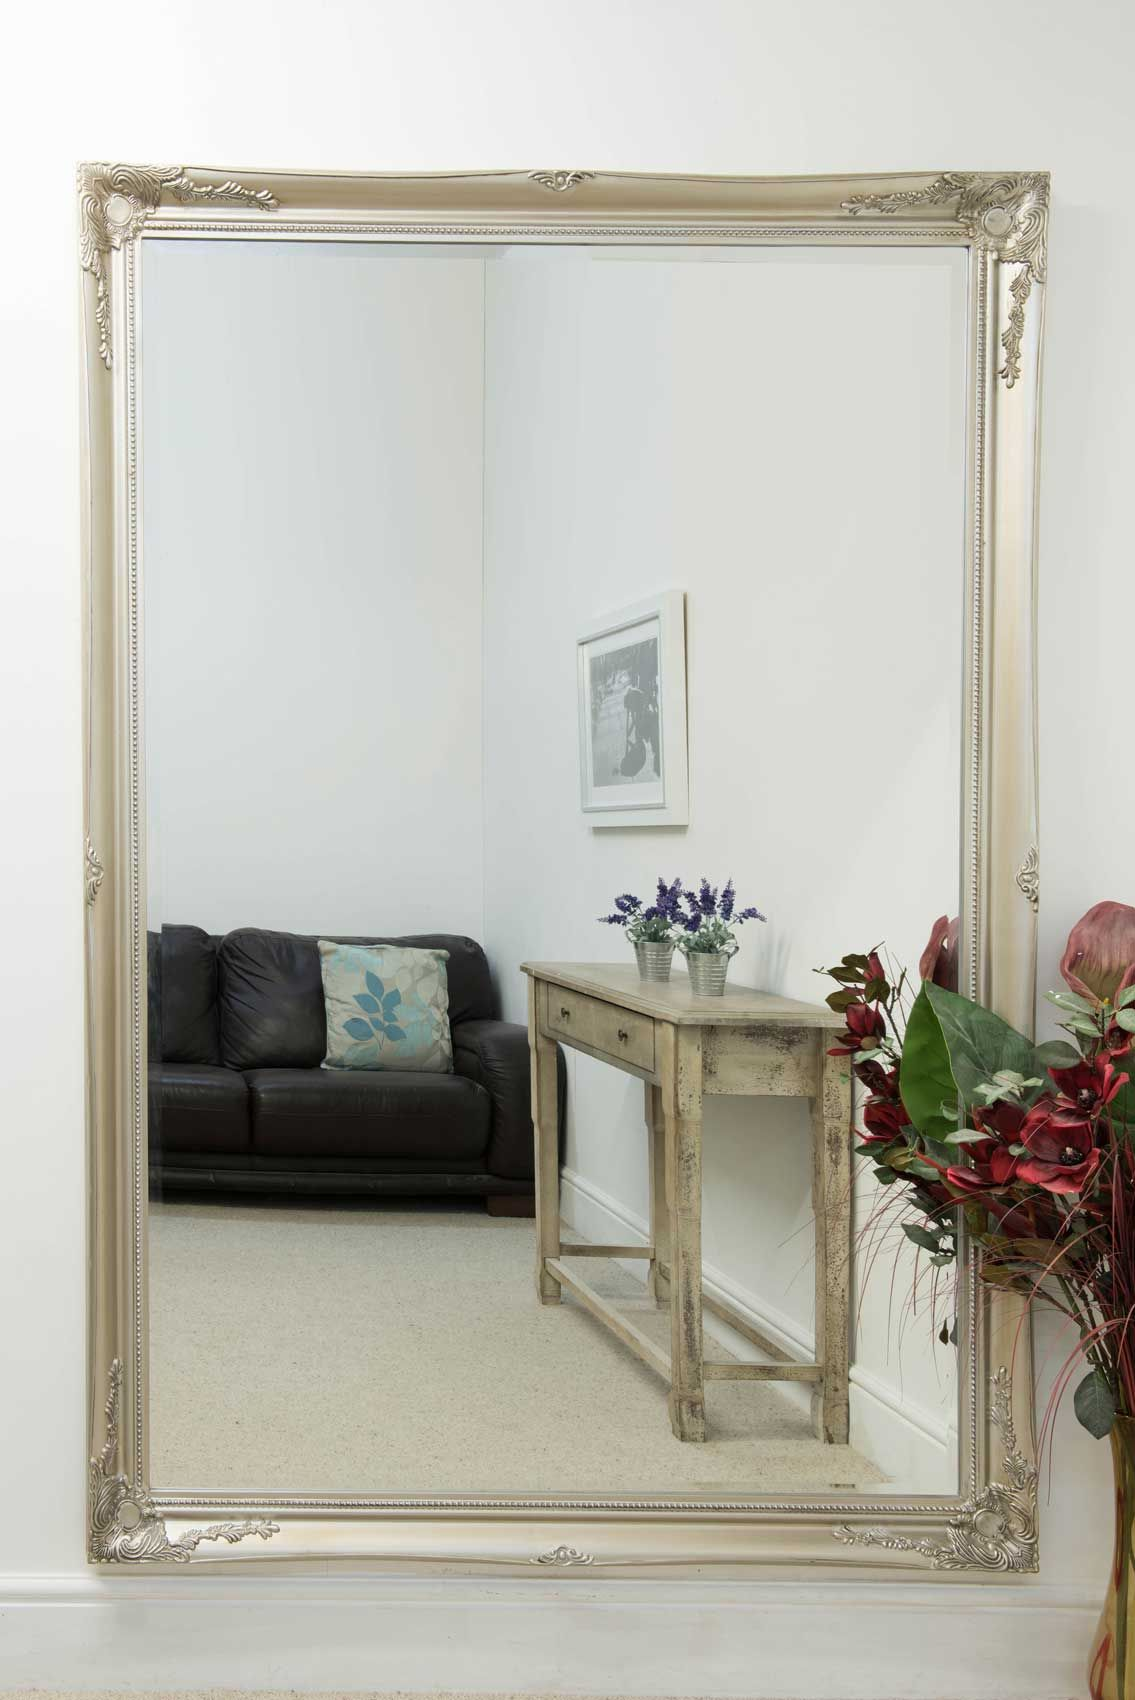 Buckland Extra Large Silver Mirror 200x140cm Extra Large Wall Mirrors Silver Framed Mirror Mirror